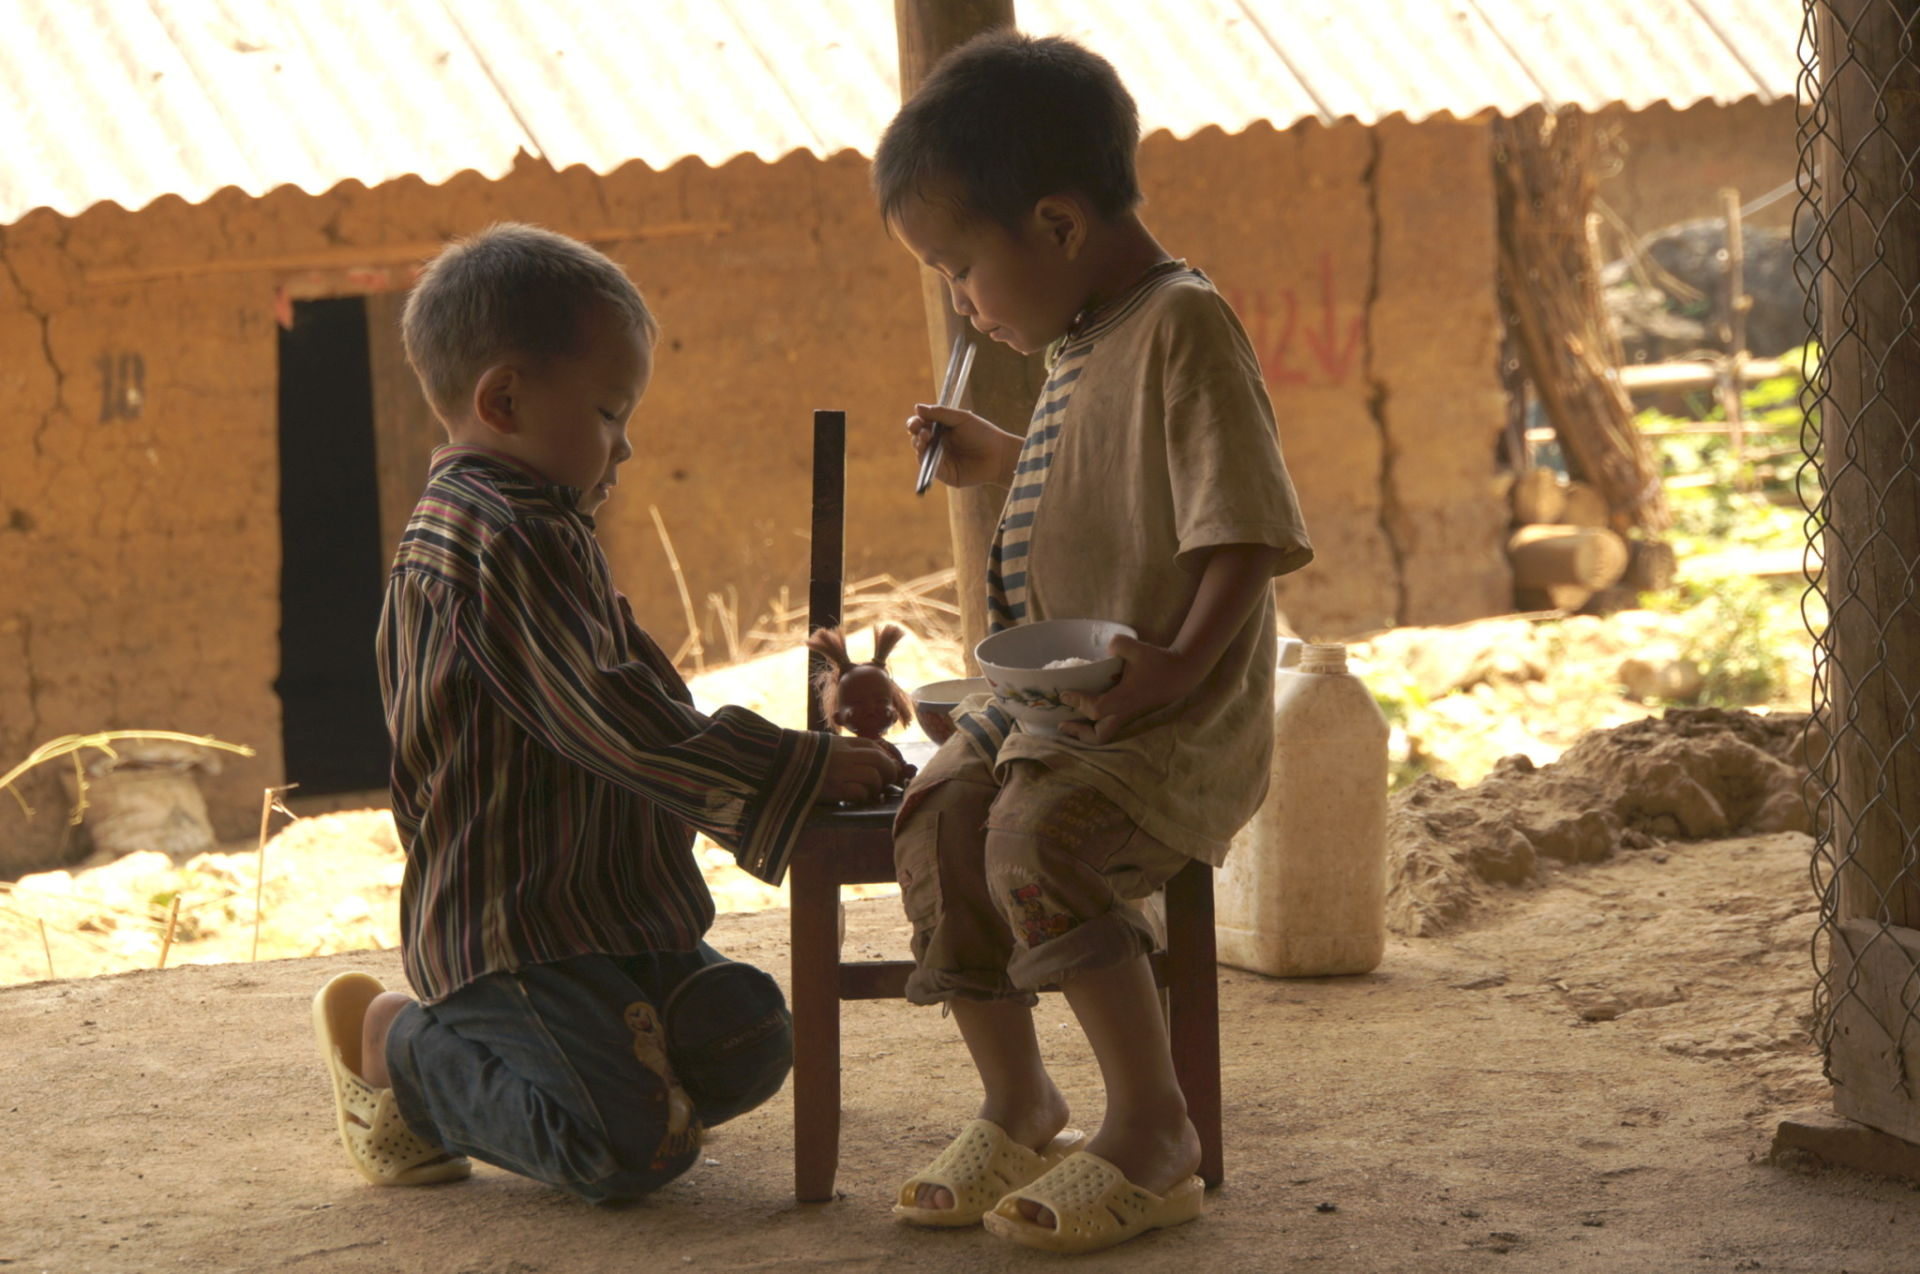 Watching these kids put on new shoes and eat a fresh bowl of soup together is a precious moment along the way!